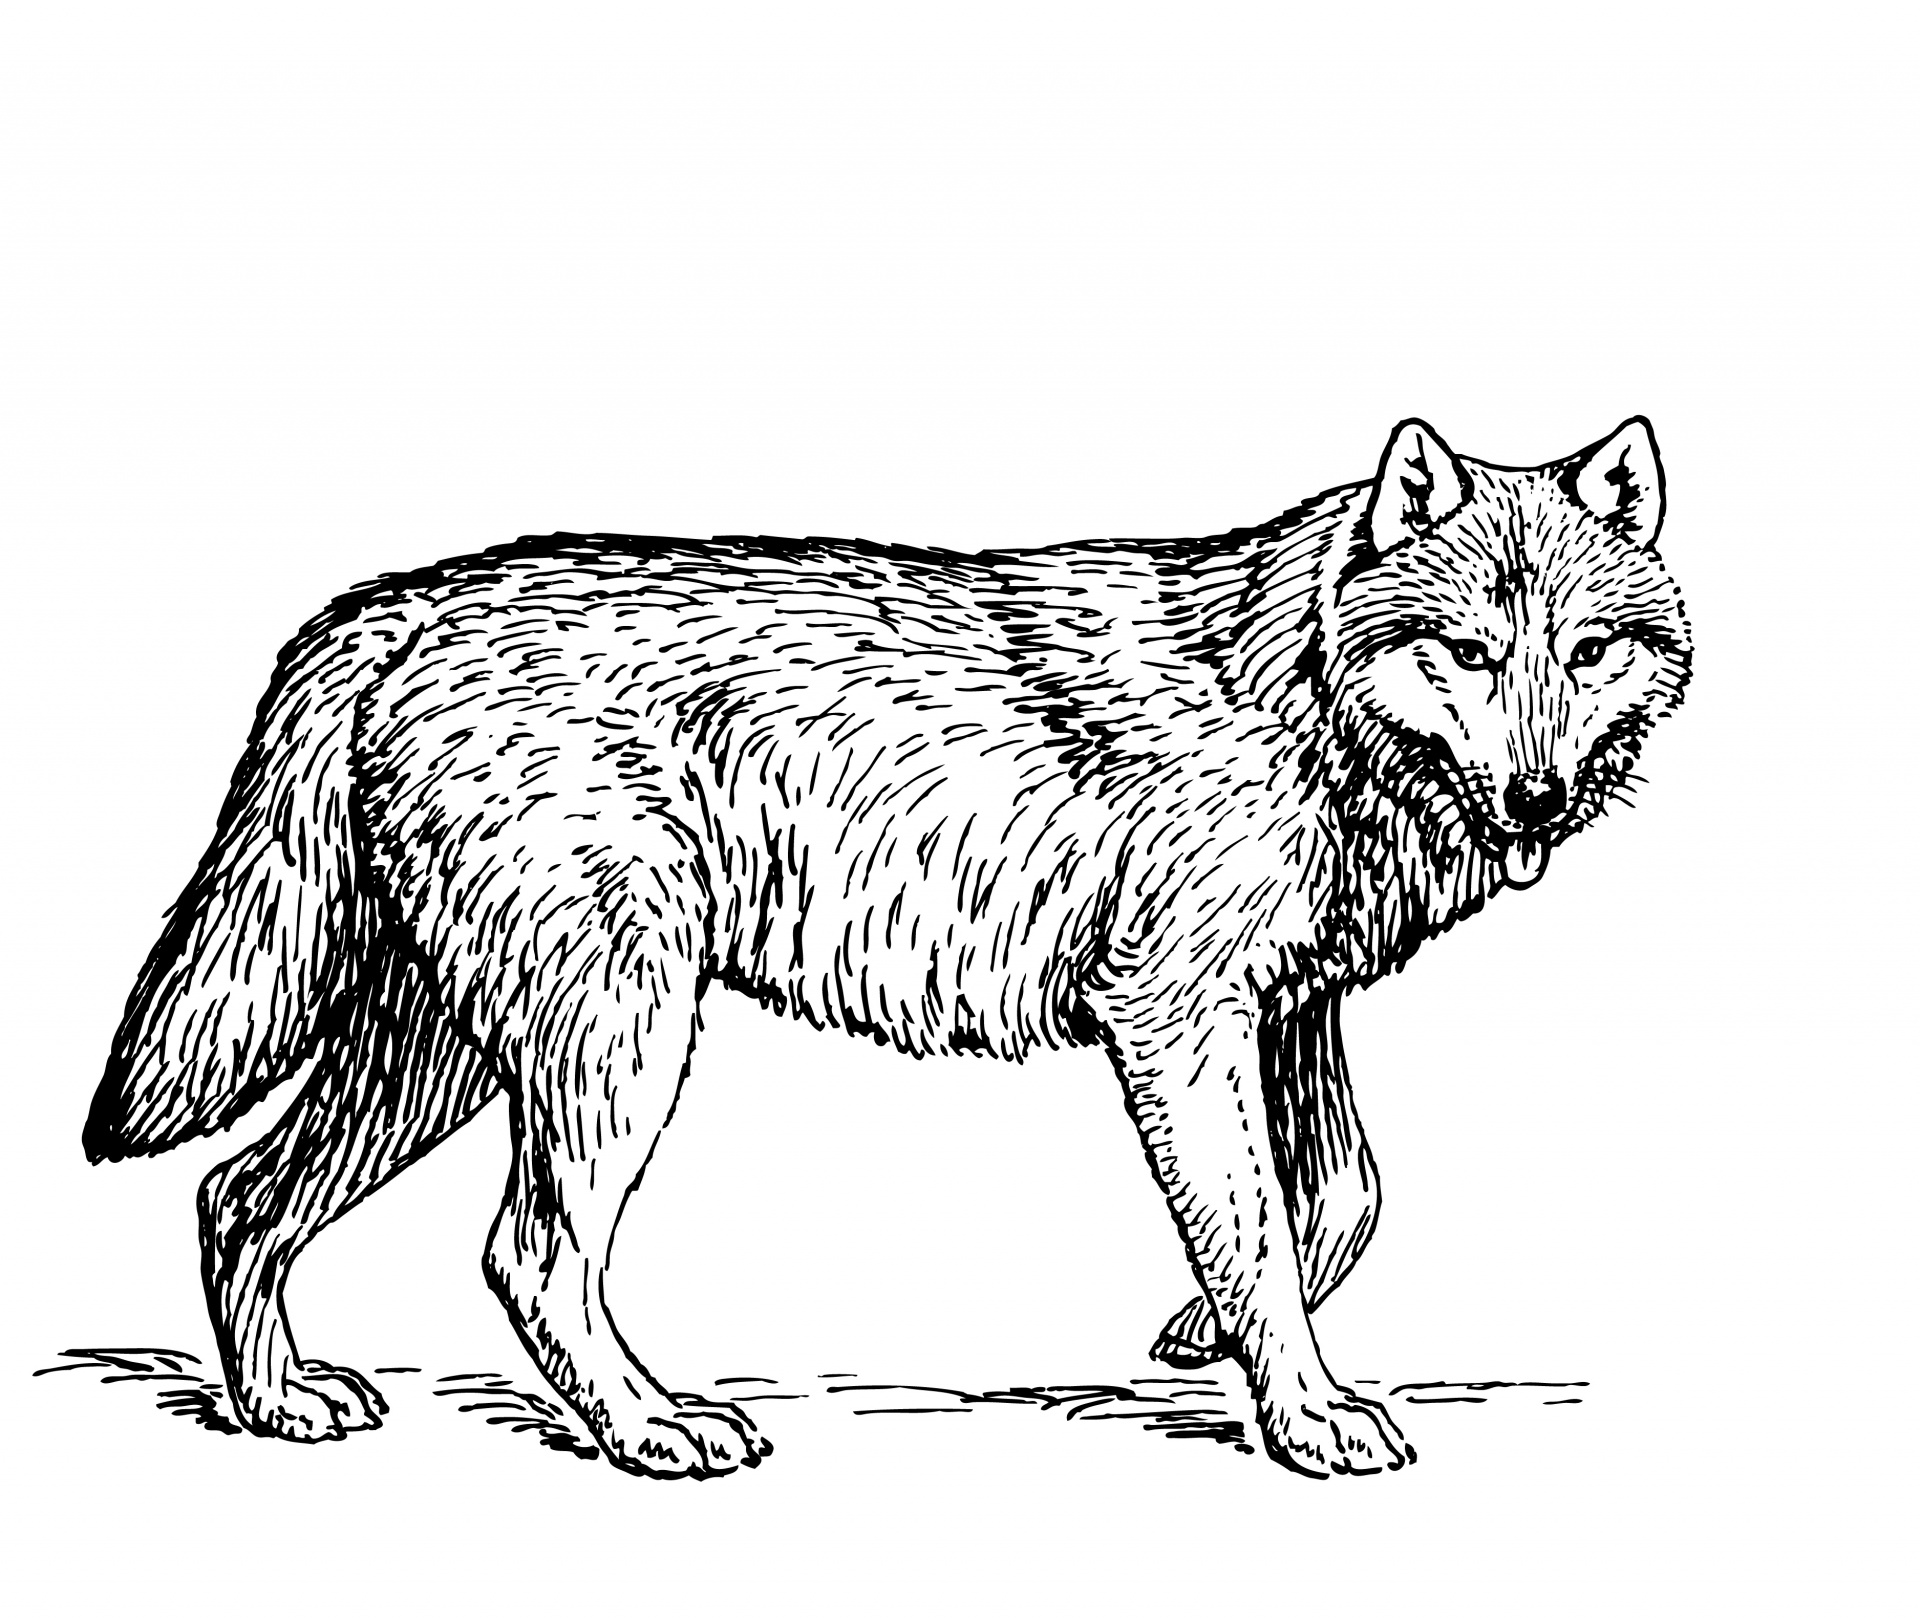 Illustration free stock photo. Wolf clipart